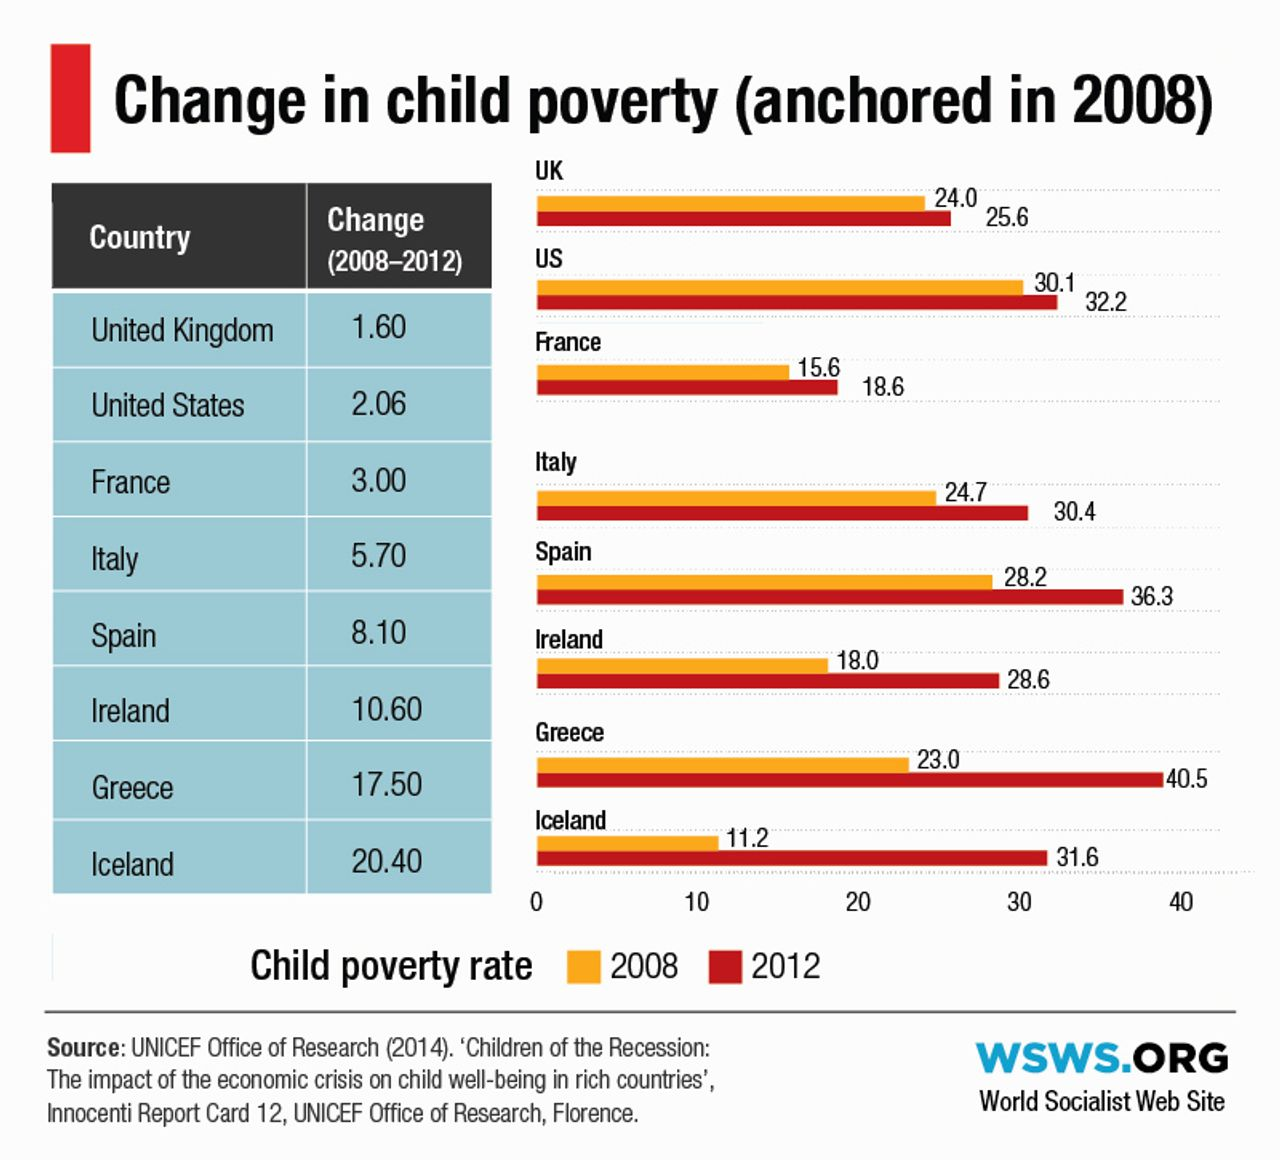 More child poverty